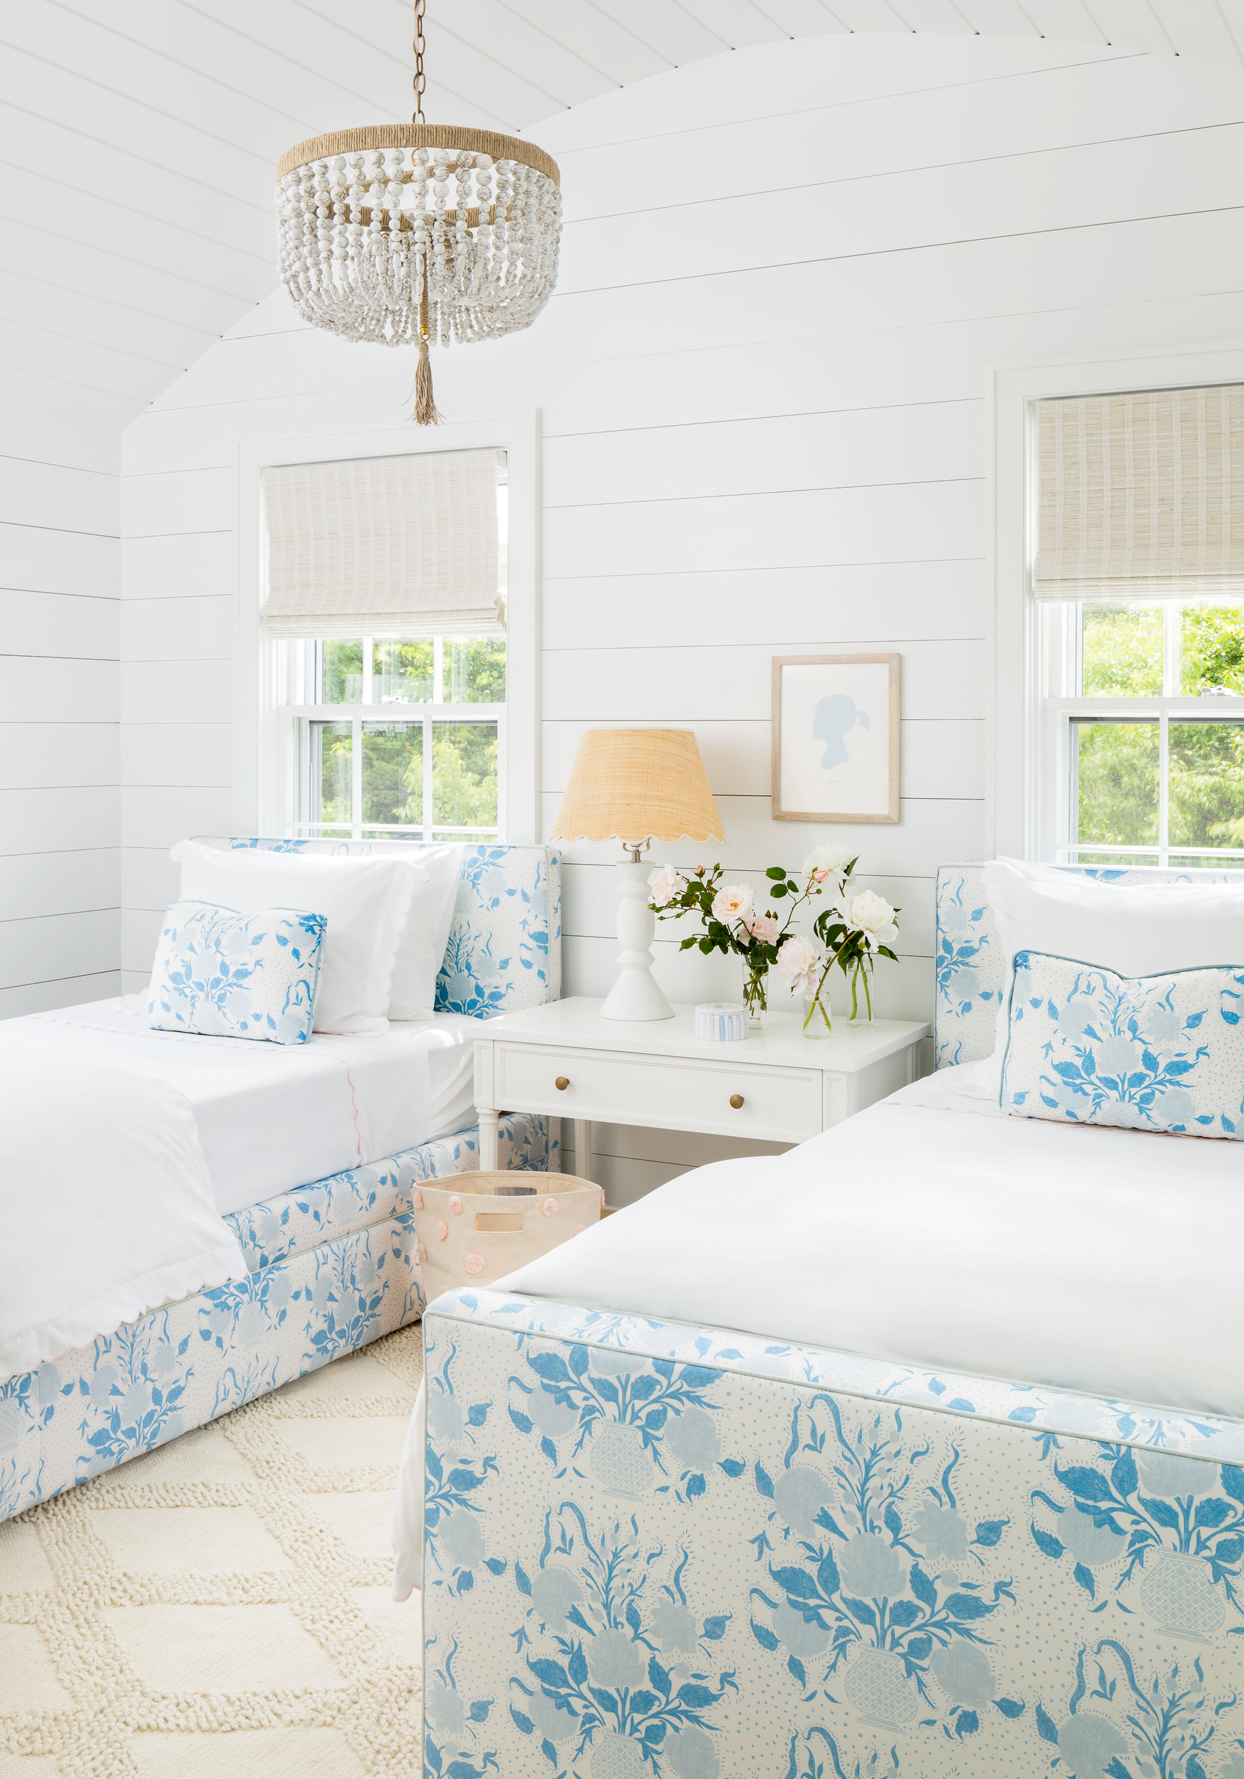 twin beds with blue floral upholstered headboards